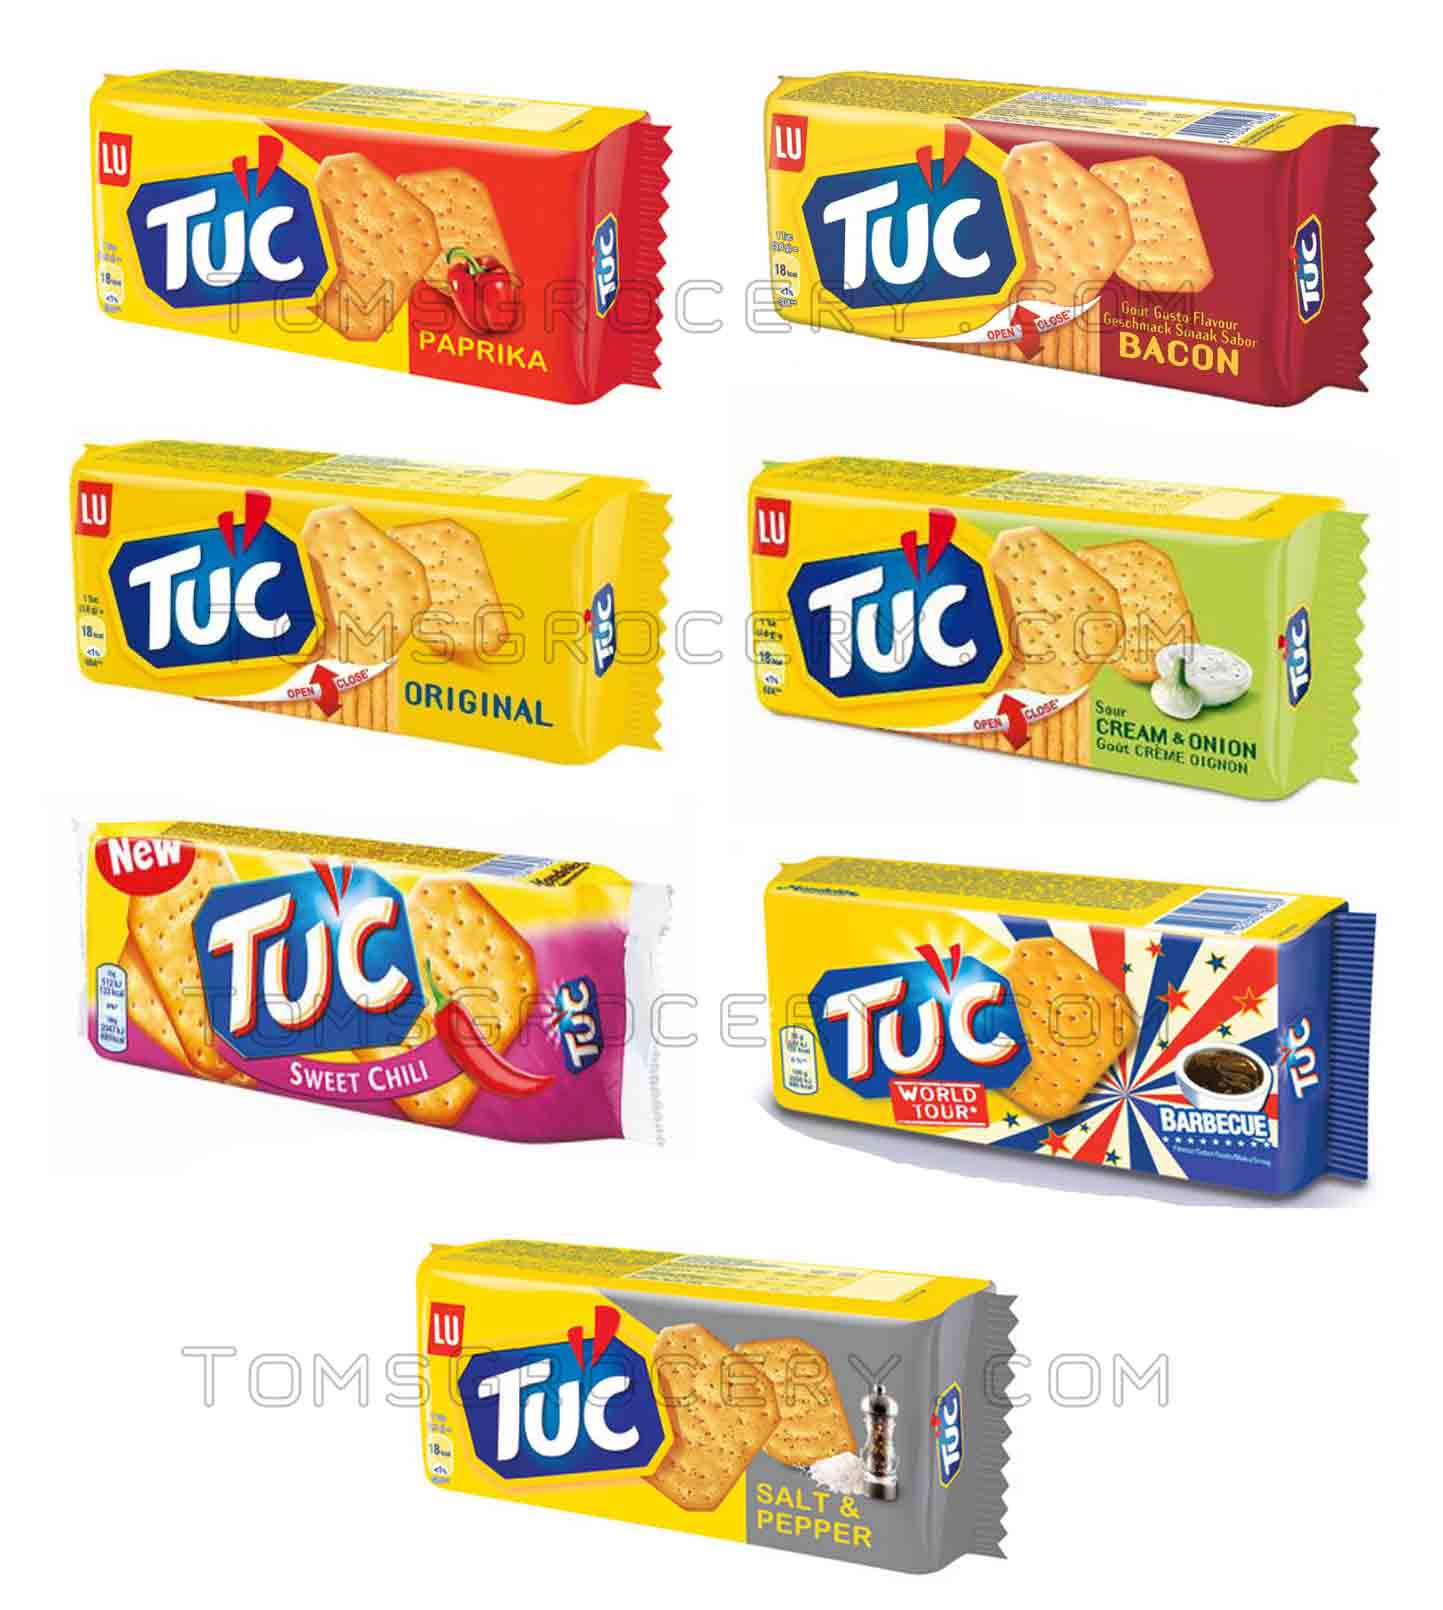 LU Crackers TUC PAPRIKA / ORIGINAL / BACON / BARBECUE ...